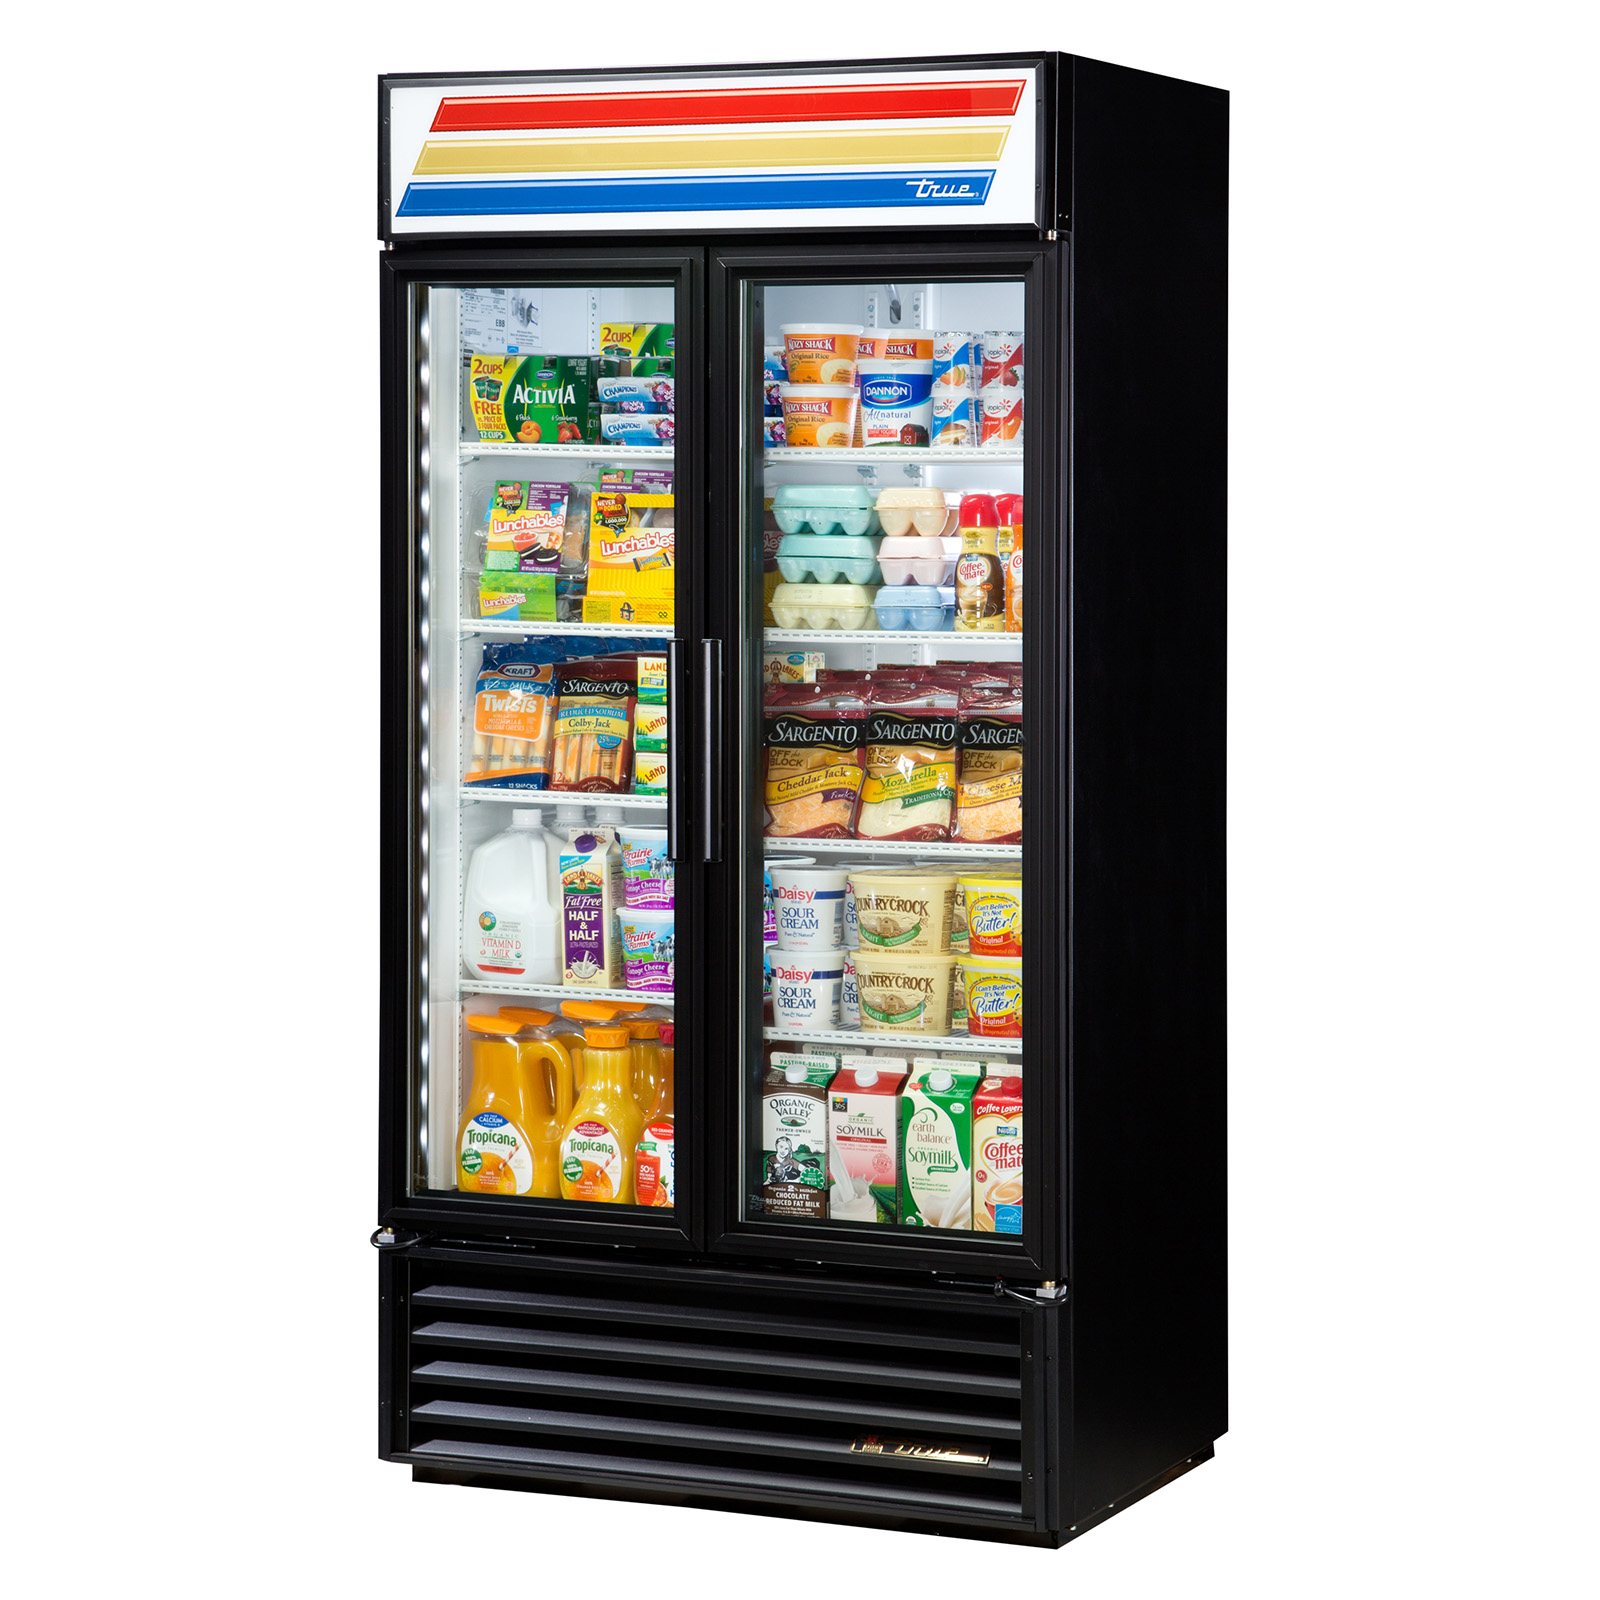 GDM-35-LD True - Refrigerated Merchandiser two-section